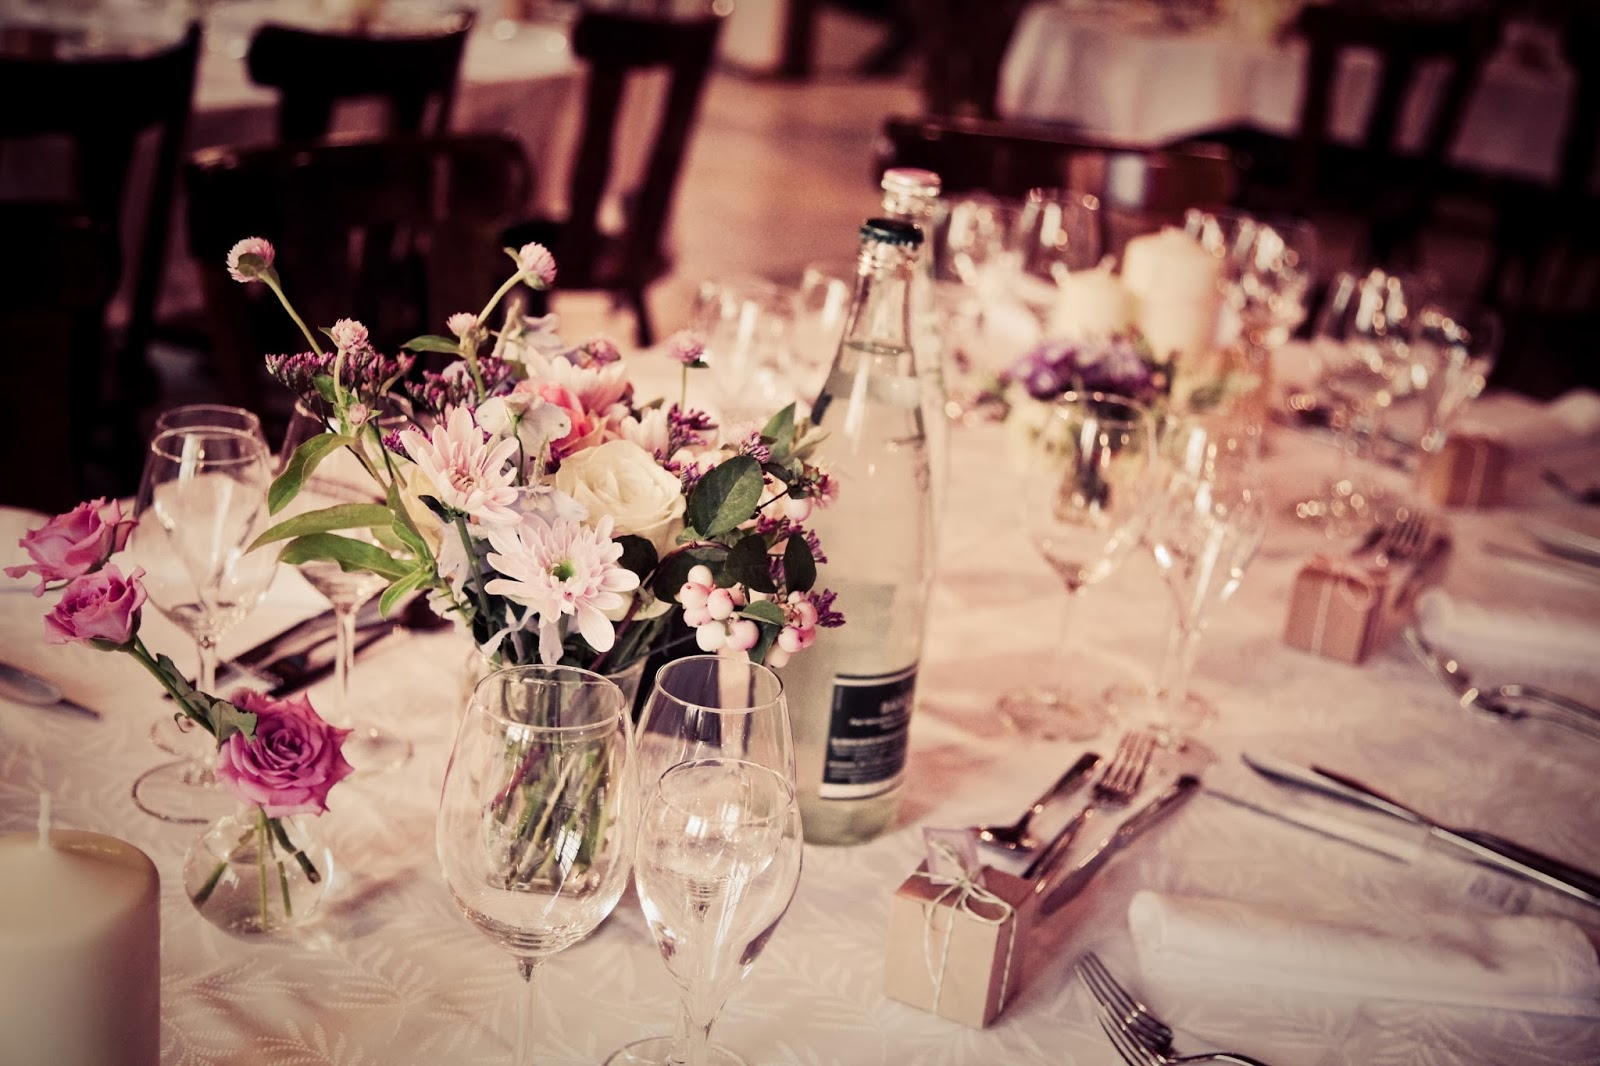 retro wedding table decoration - wedding photographer : Elisabeth Perotin